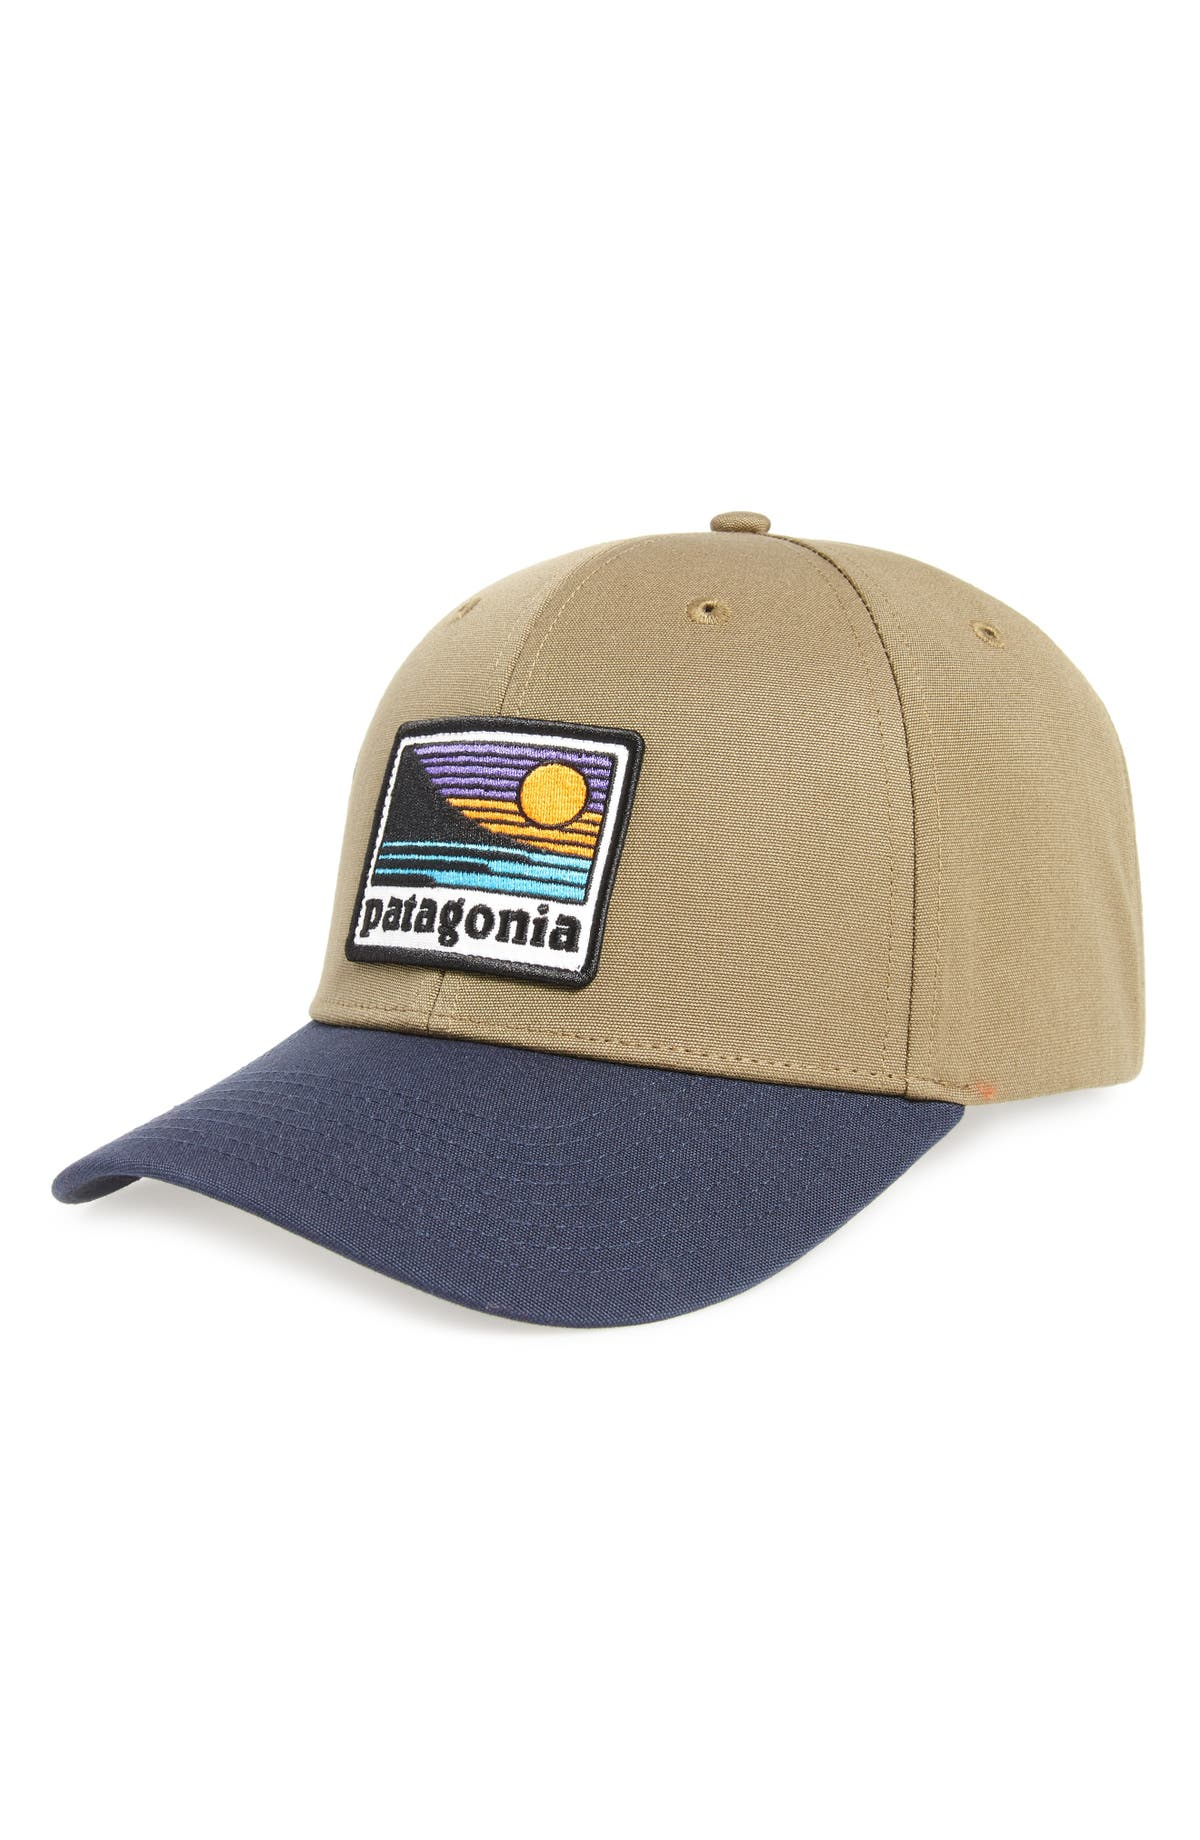 Up & Out Roger That Trucker Cap